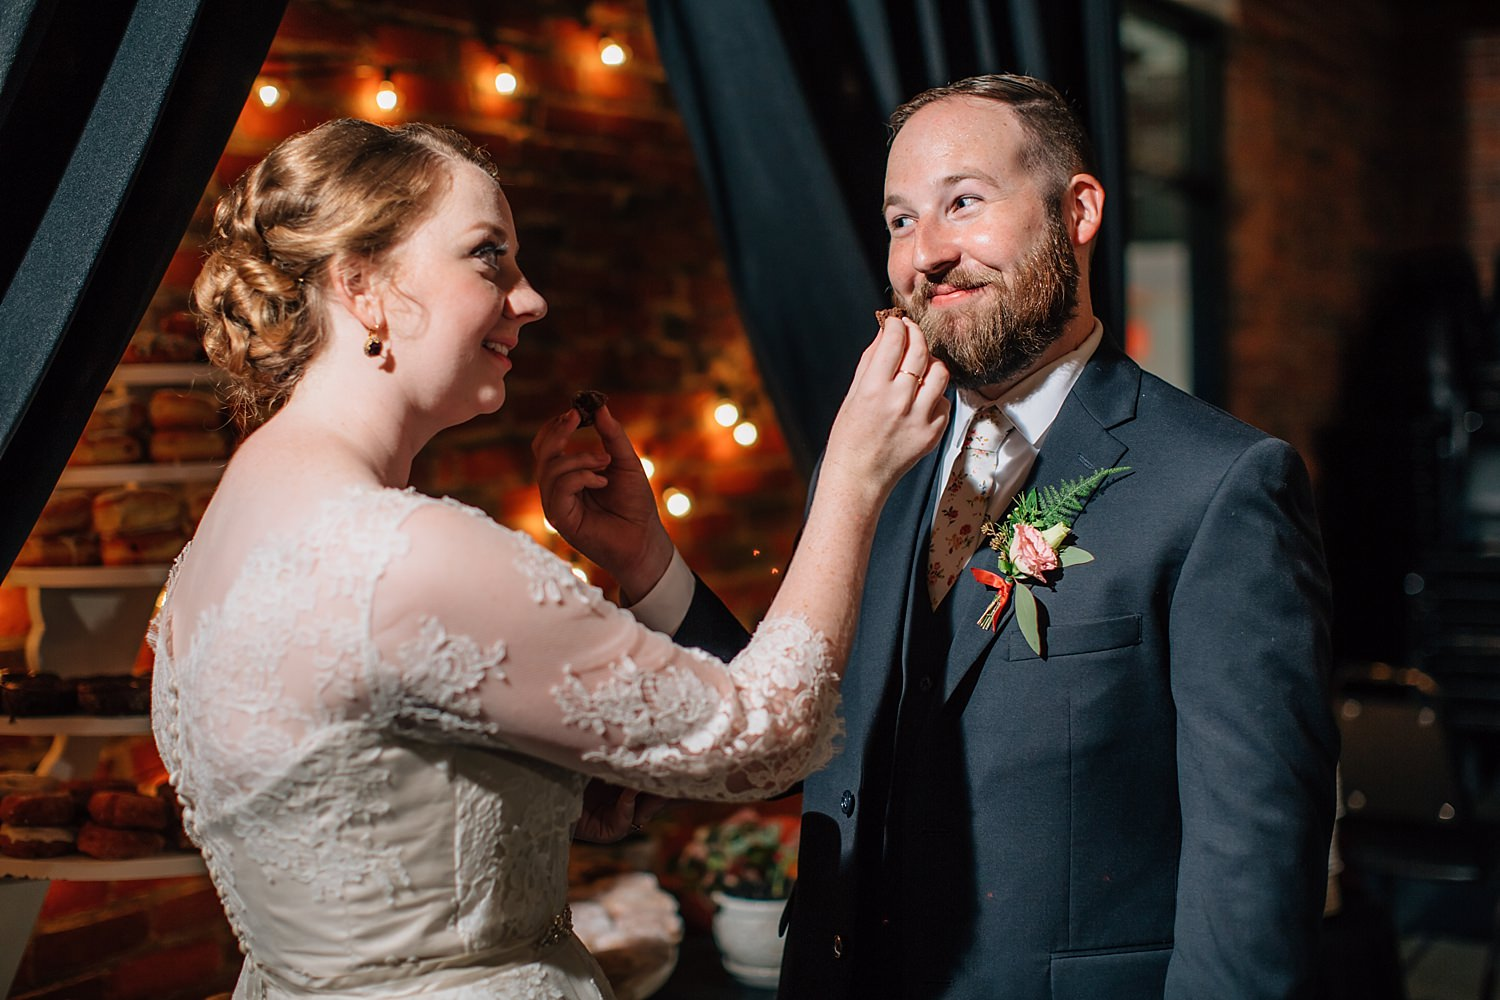 wedding ceremony and reception at roosevelt coffee house in ohio